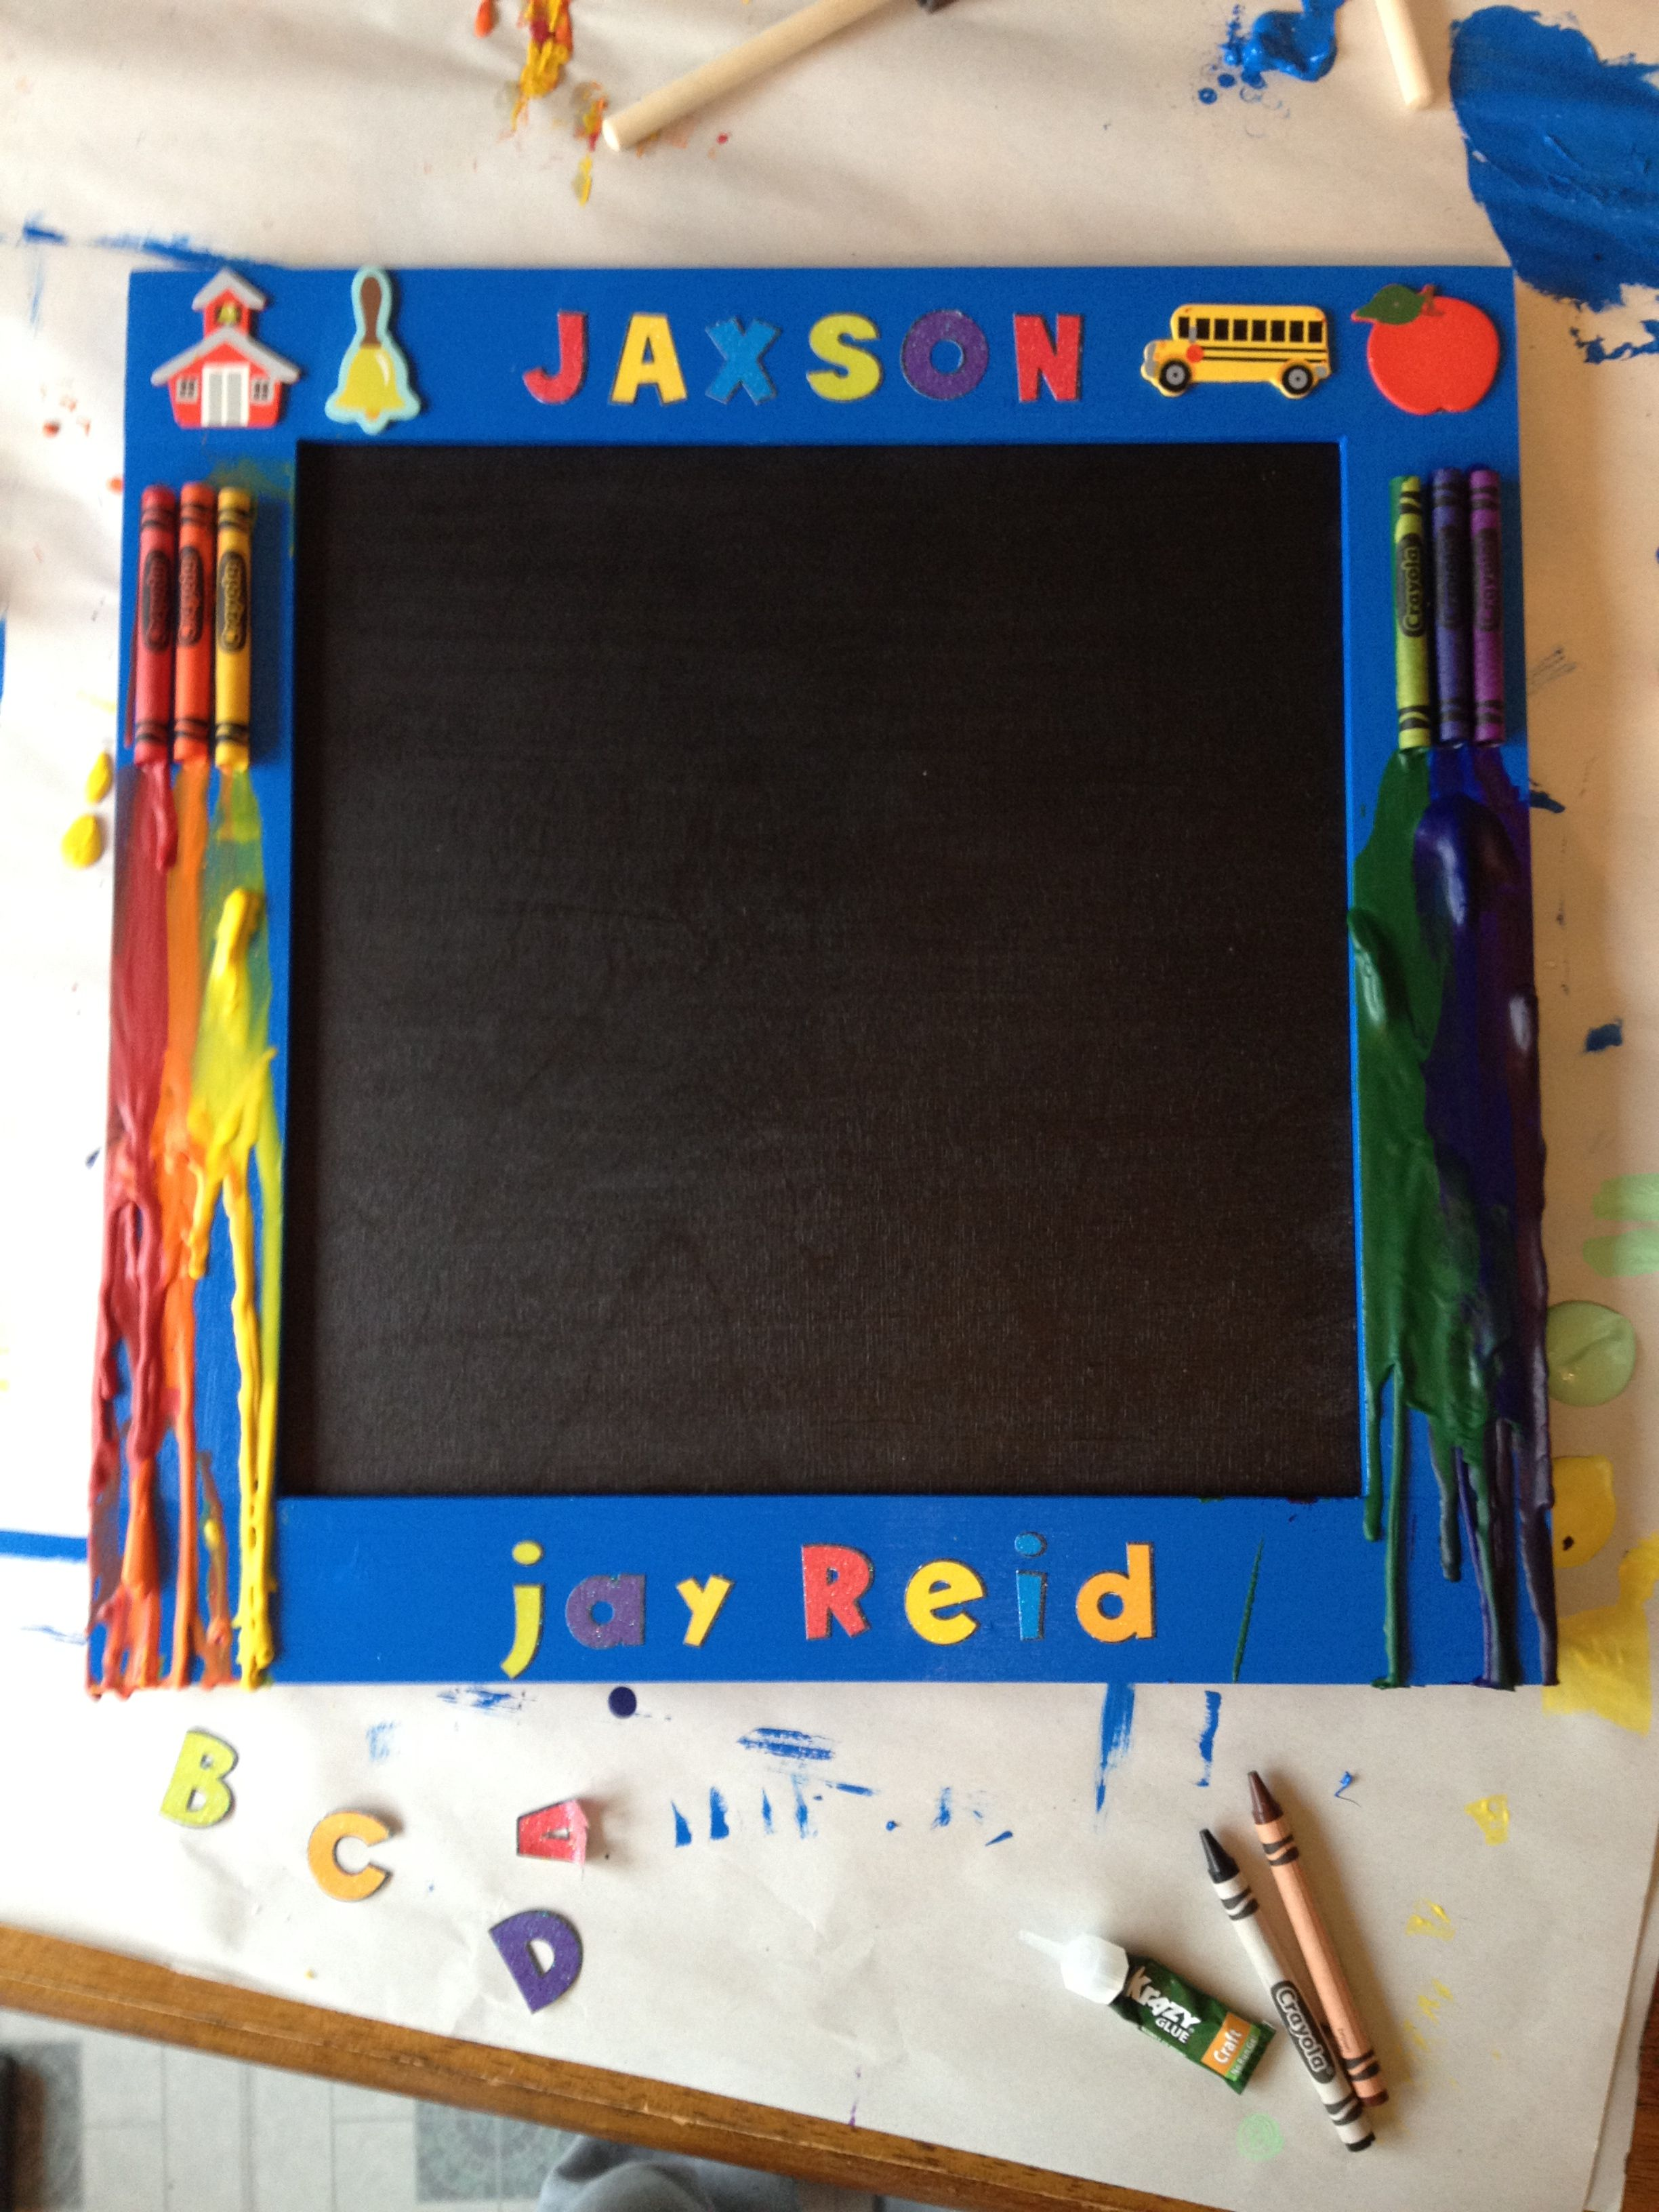 #Kid Chalkboard #Diy #Melted Crayon Project #Wood Frame, Piece Of